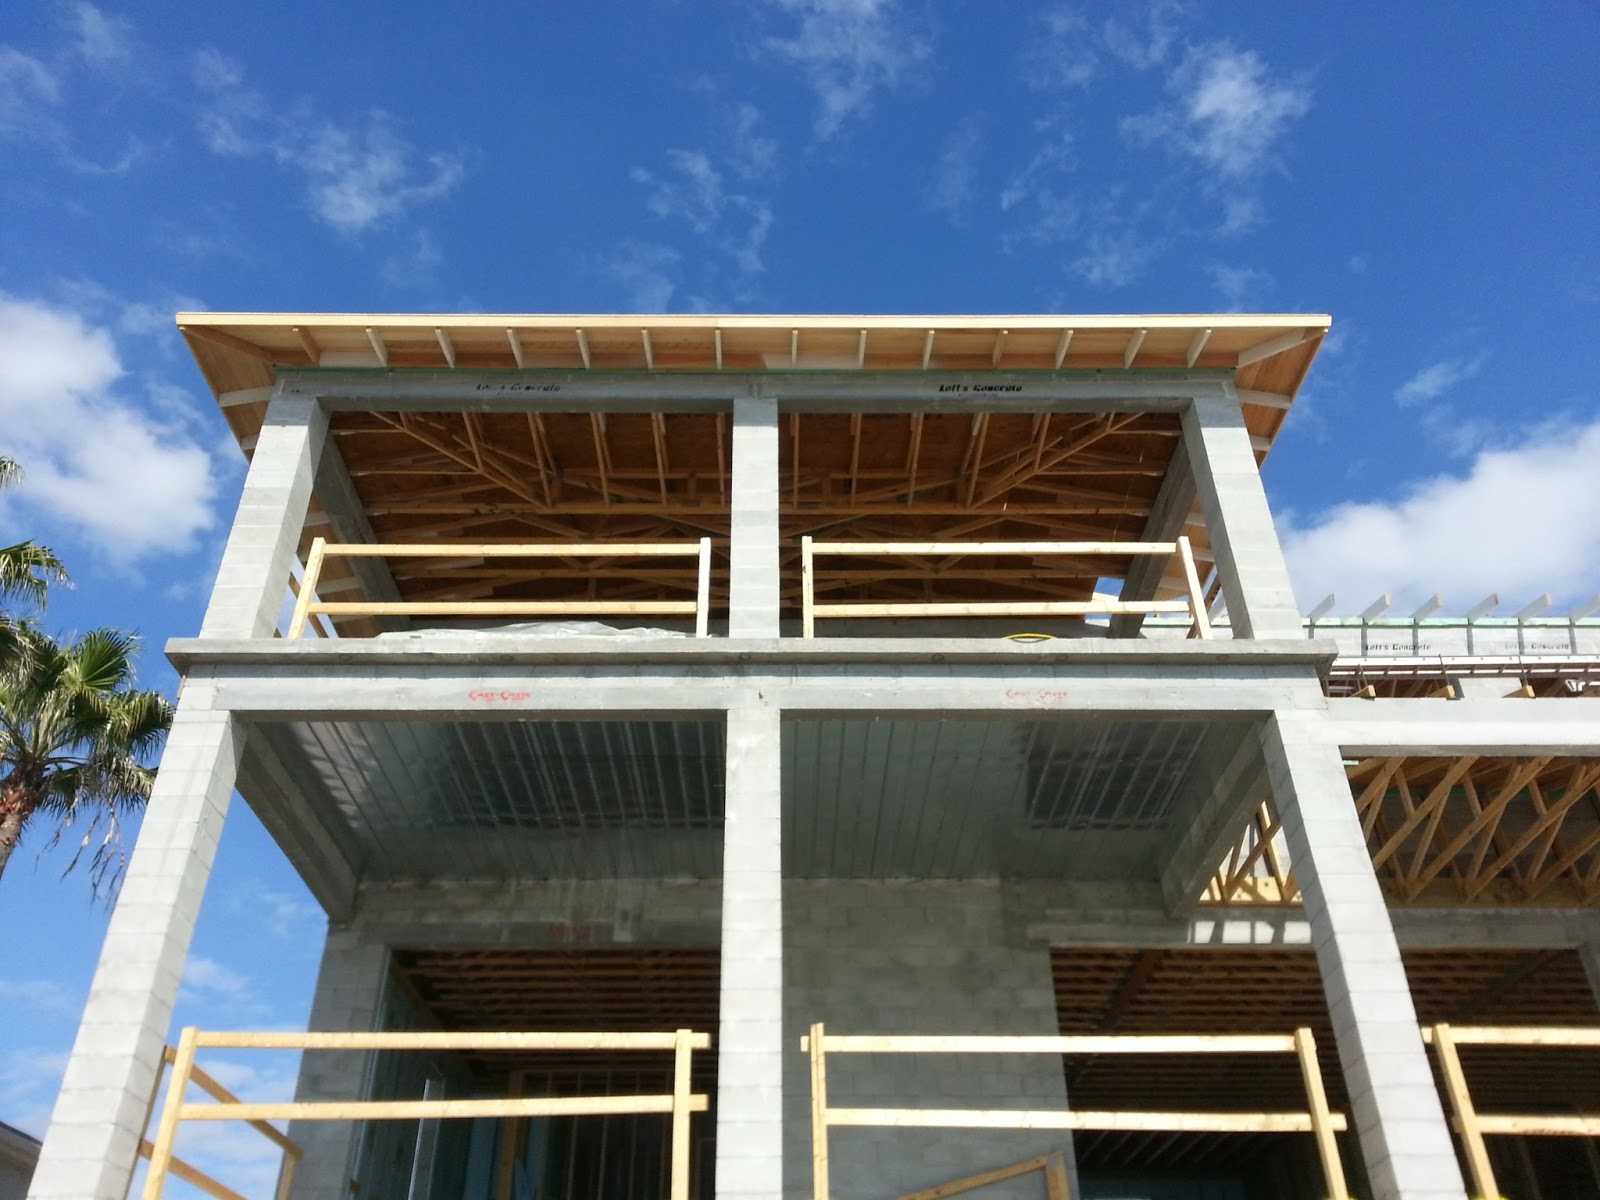 The roof overhang and sheathing the schmidt residence for Roof sheathing material options